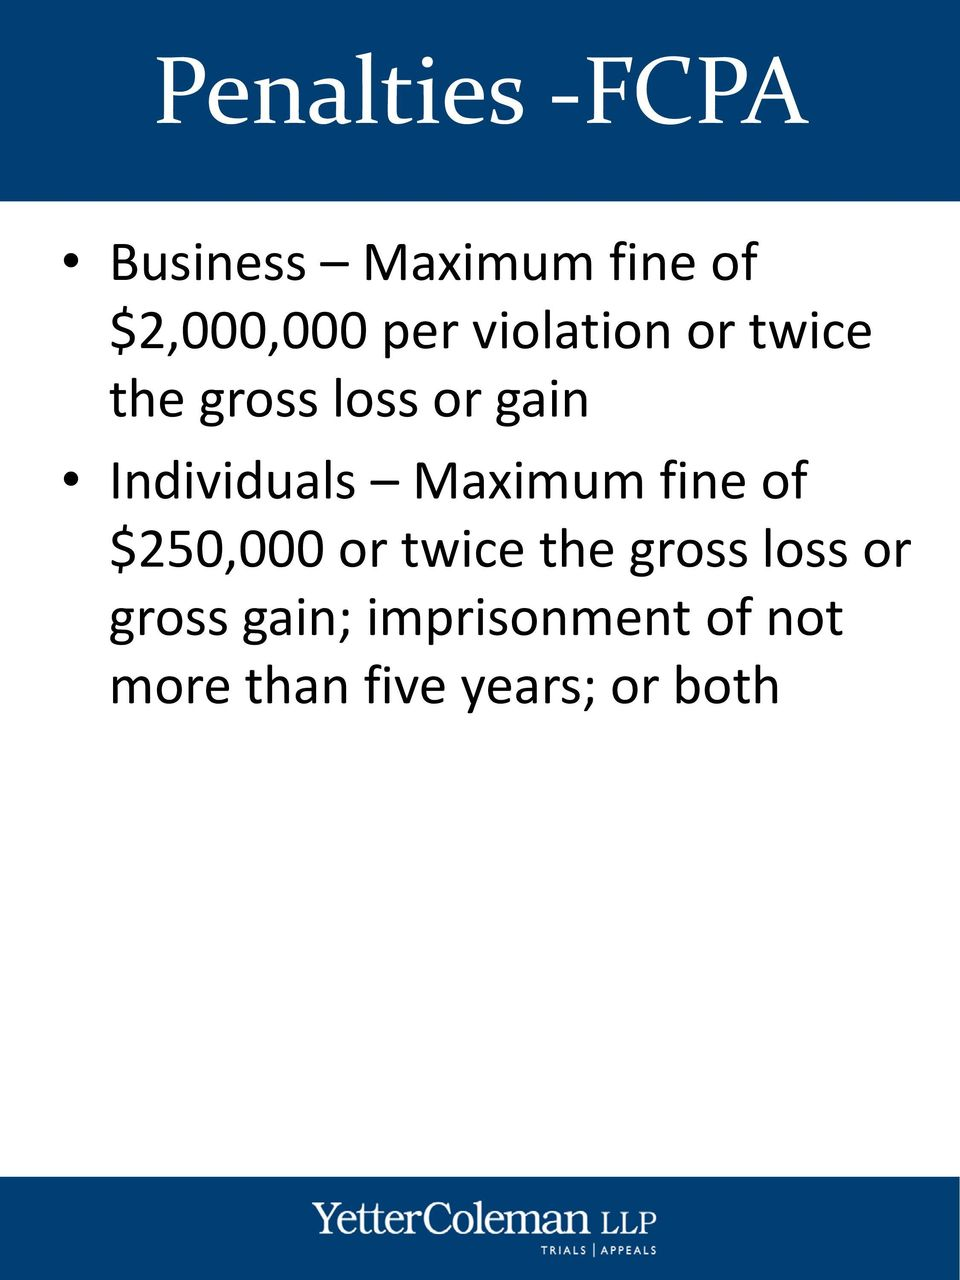 Maximum fine of $250,000 or twice the gross loss or